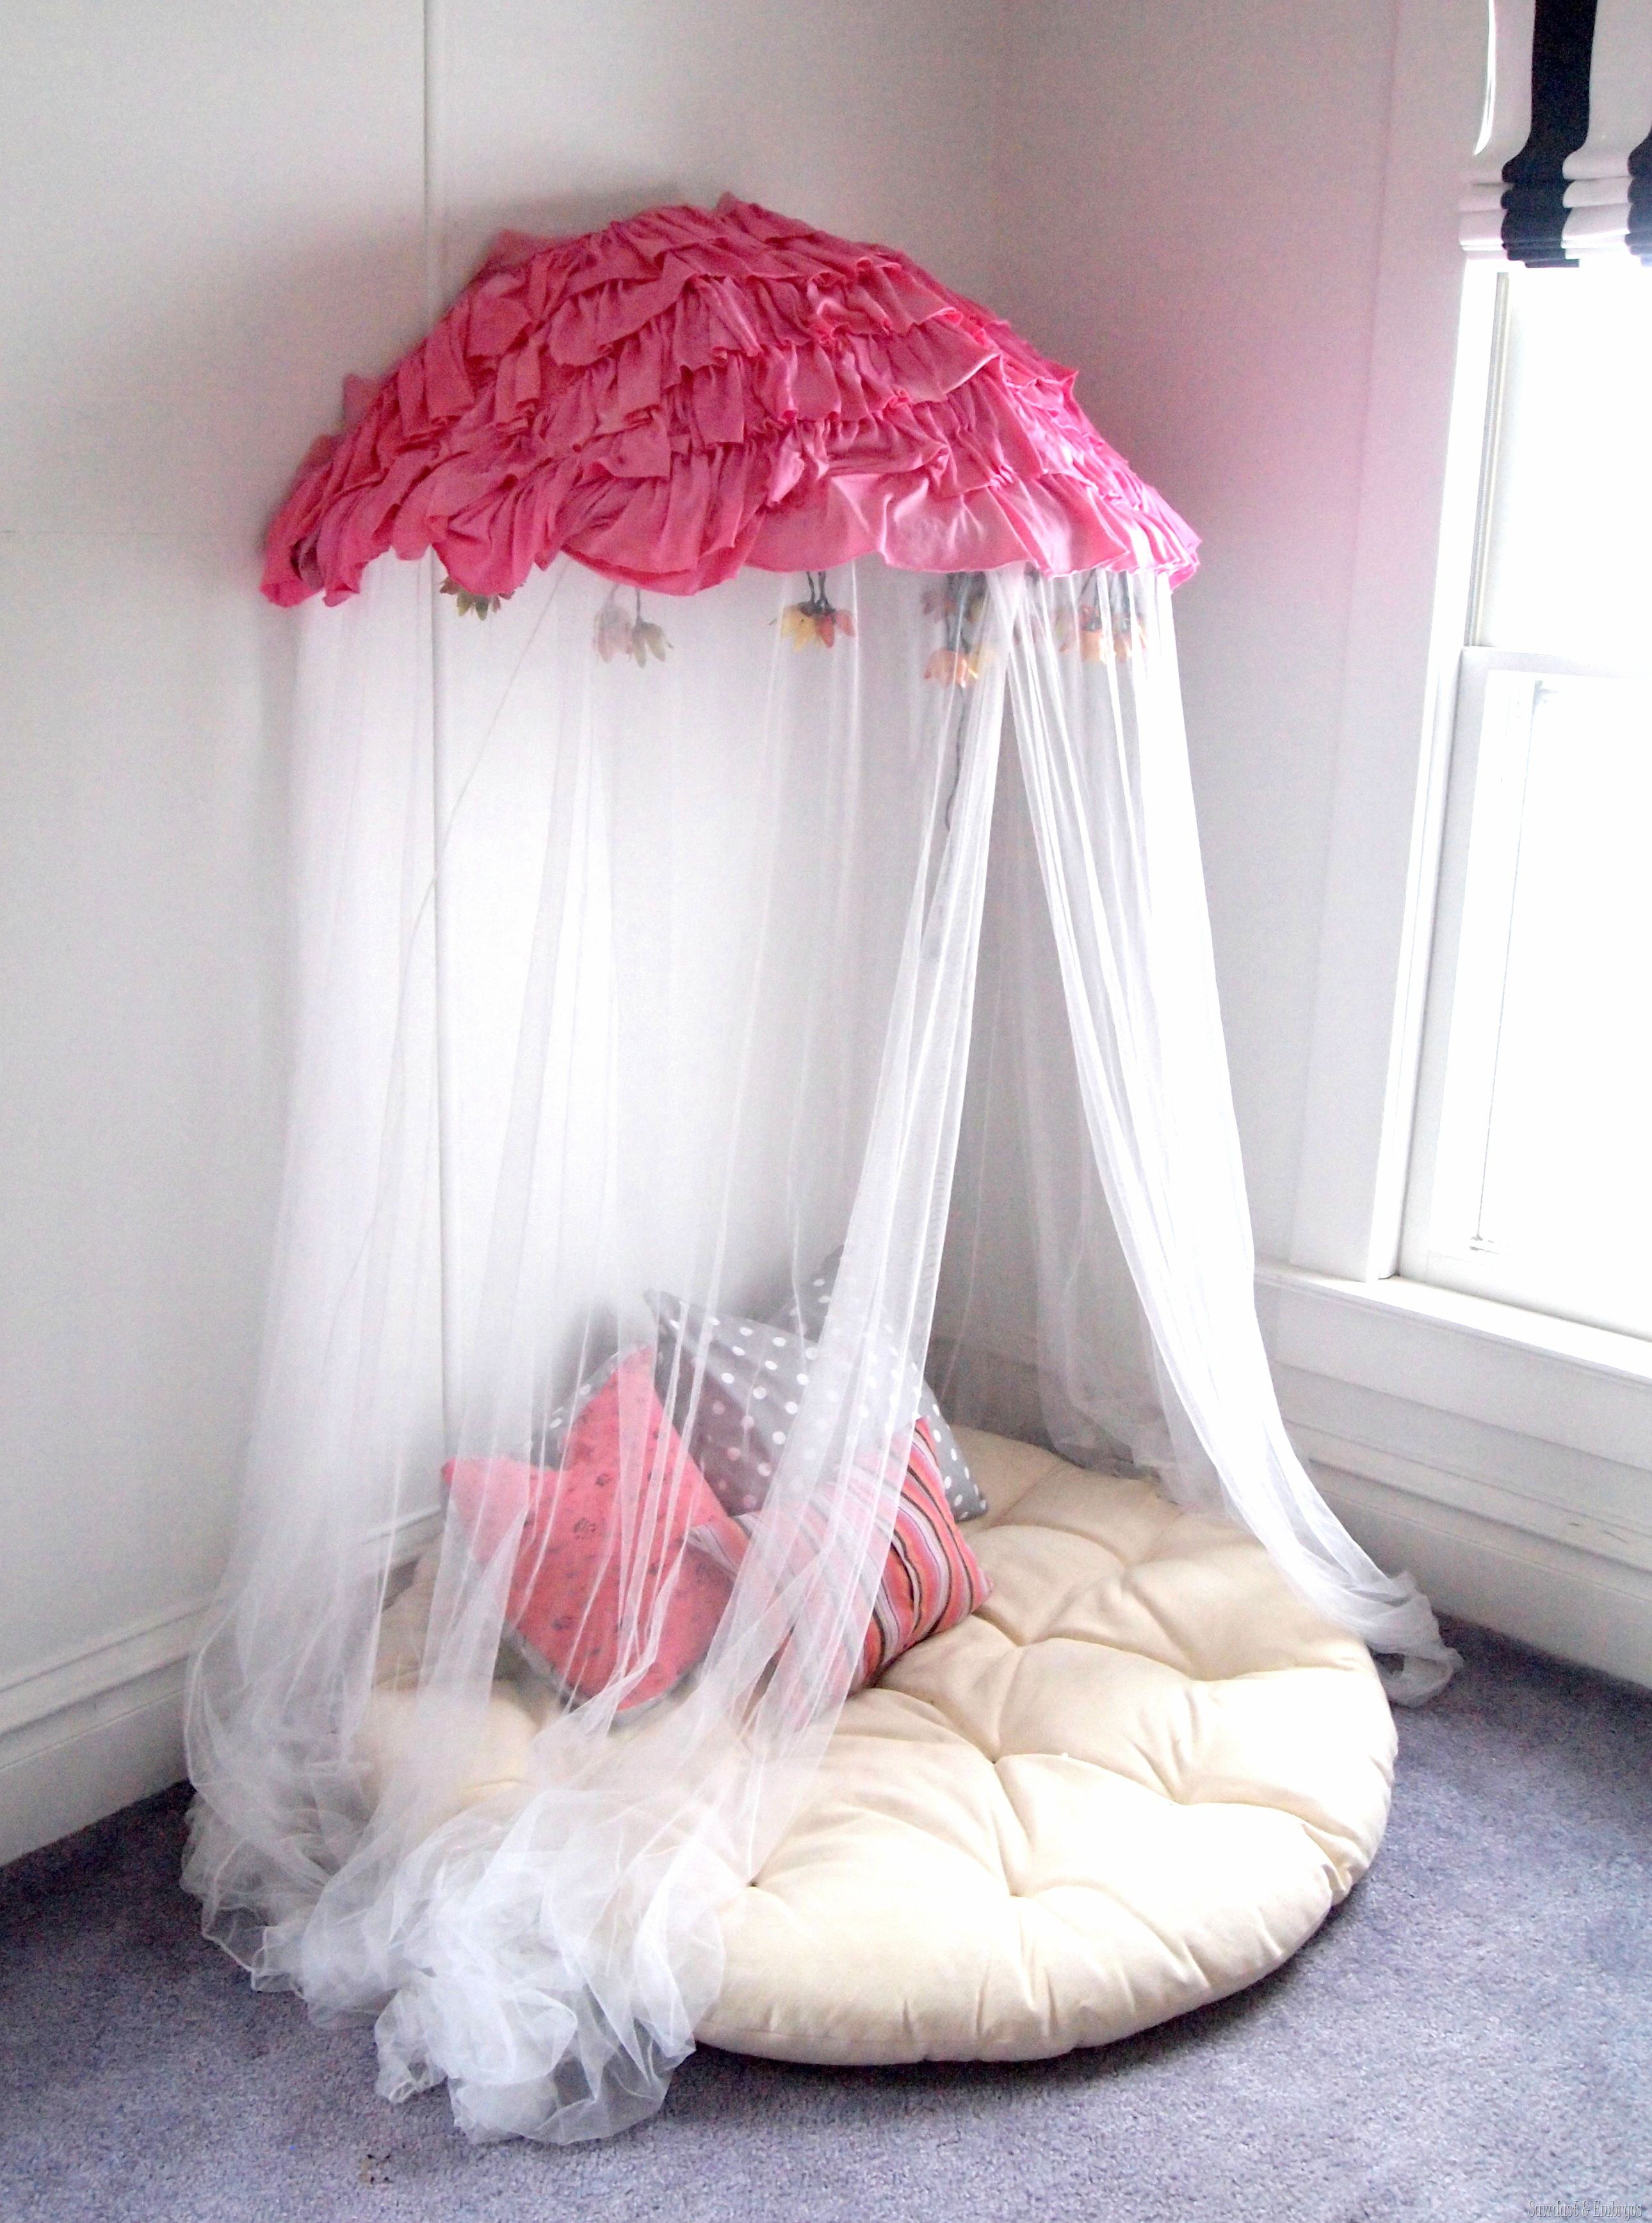 How to make a bed canopy for girls - Children S Canopy Using A Papasan Chair Frame Sawdust And Embryos